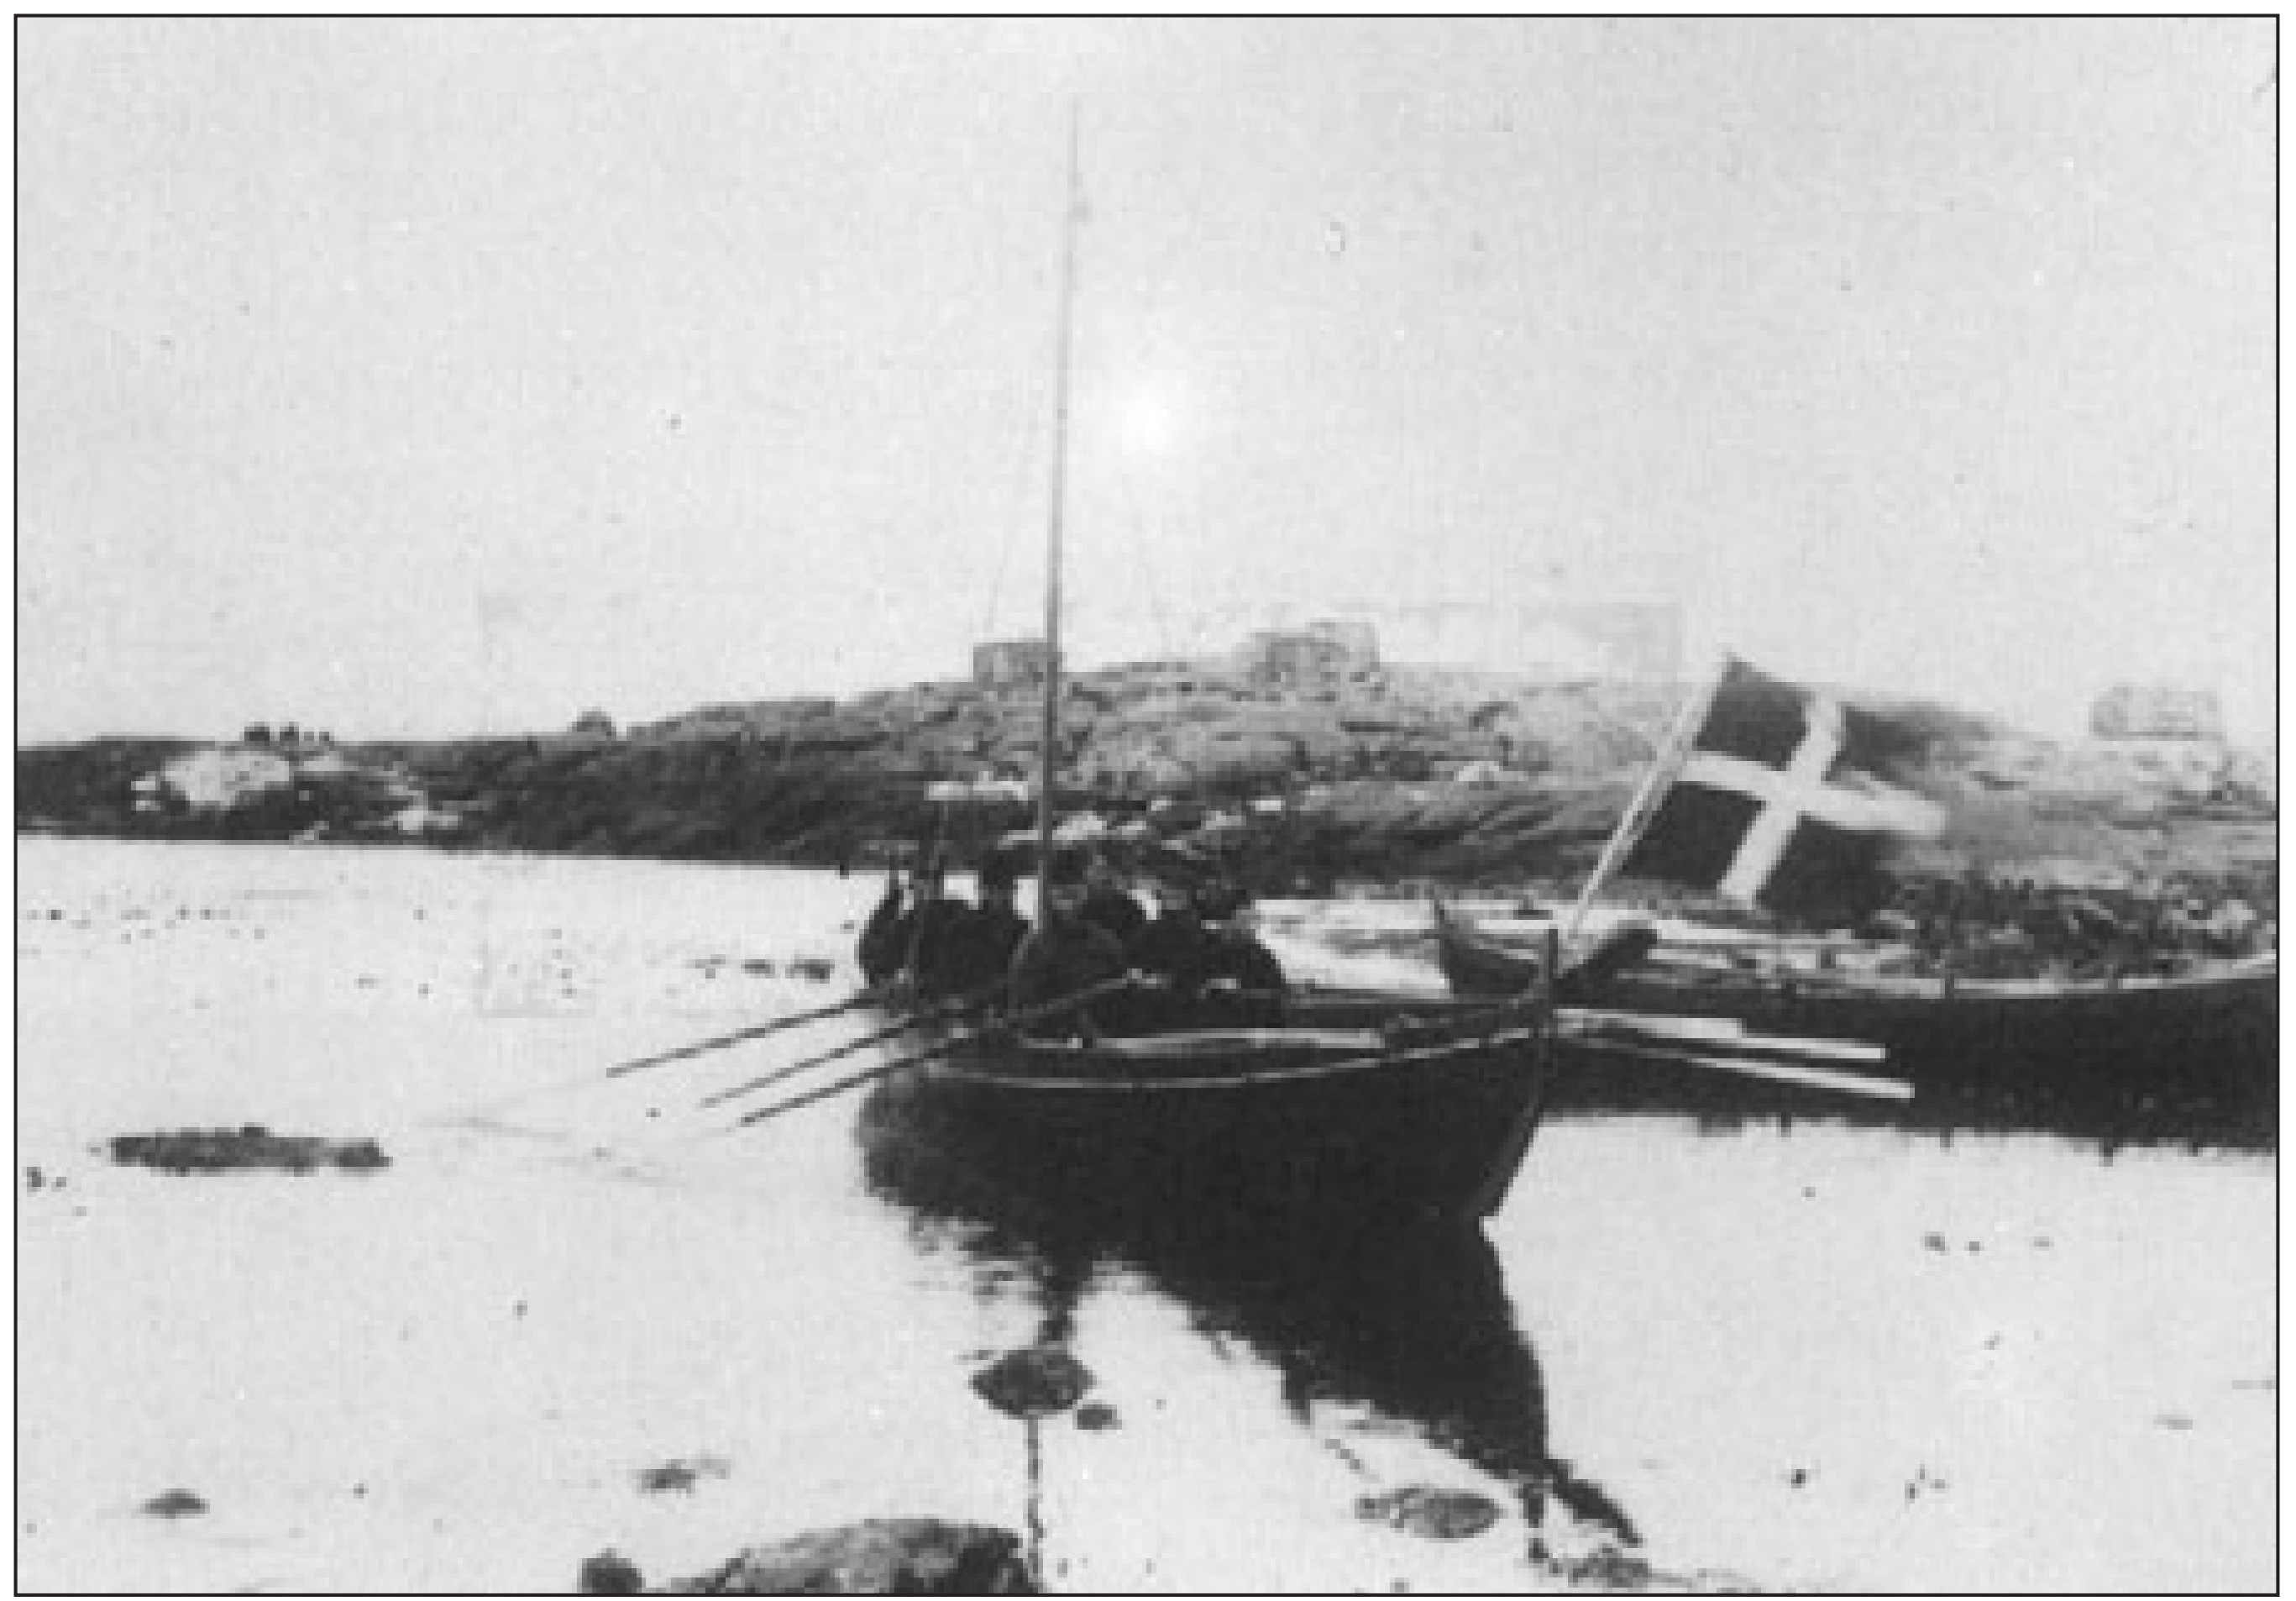 Six-man rowing boat used by the skjútsur system photographed at Skopun on Sandoy island, Faroe Islands. From Føroya Fornminnissavnið, file 89.013, reproduced on page 102 of More Stamps and Story of the Faroe Islands by Dan Brandt (2006).